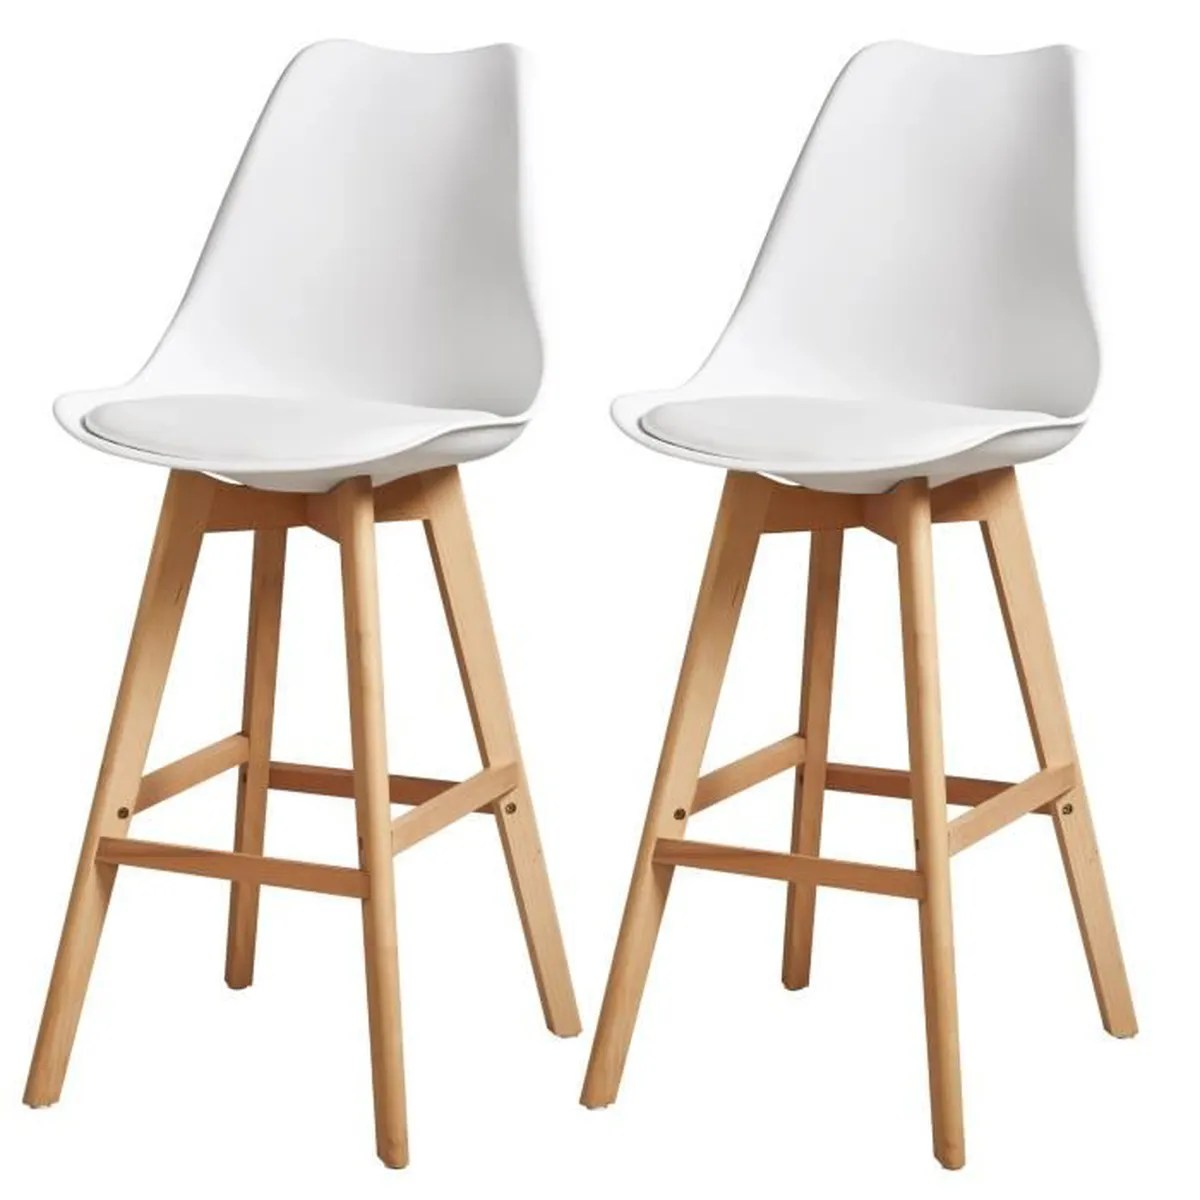 Tabourets Malvy Lot De 2 Tabouret De Bar Pas Cher Latest Lot De Tabourets De Bar